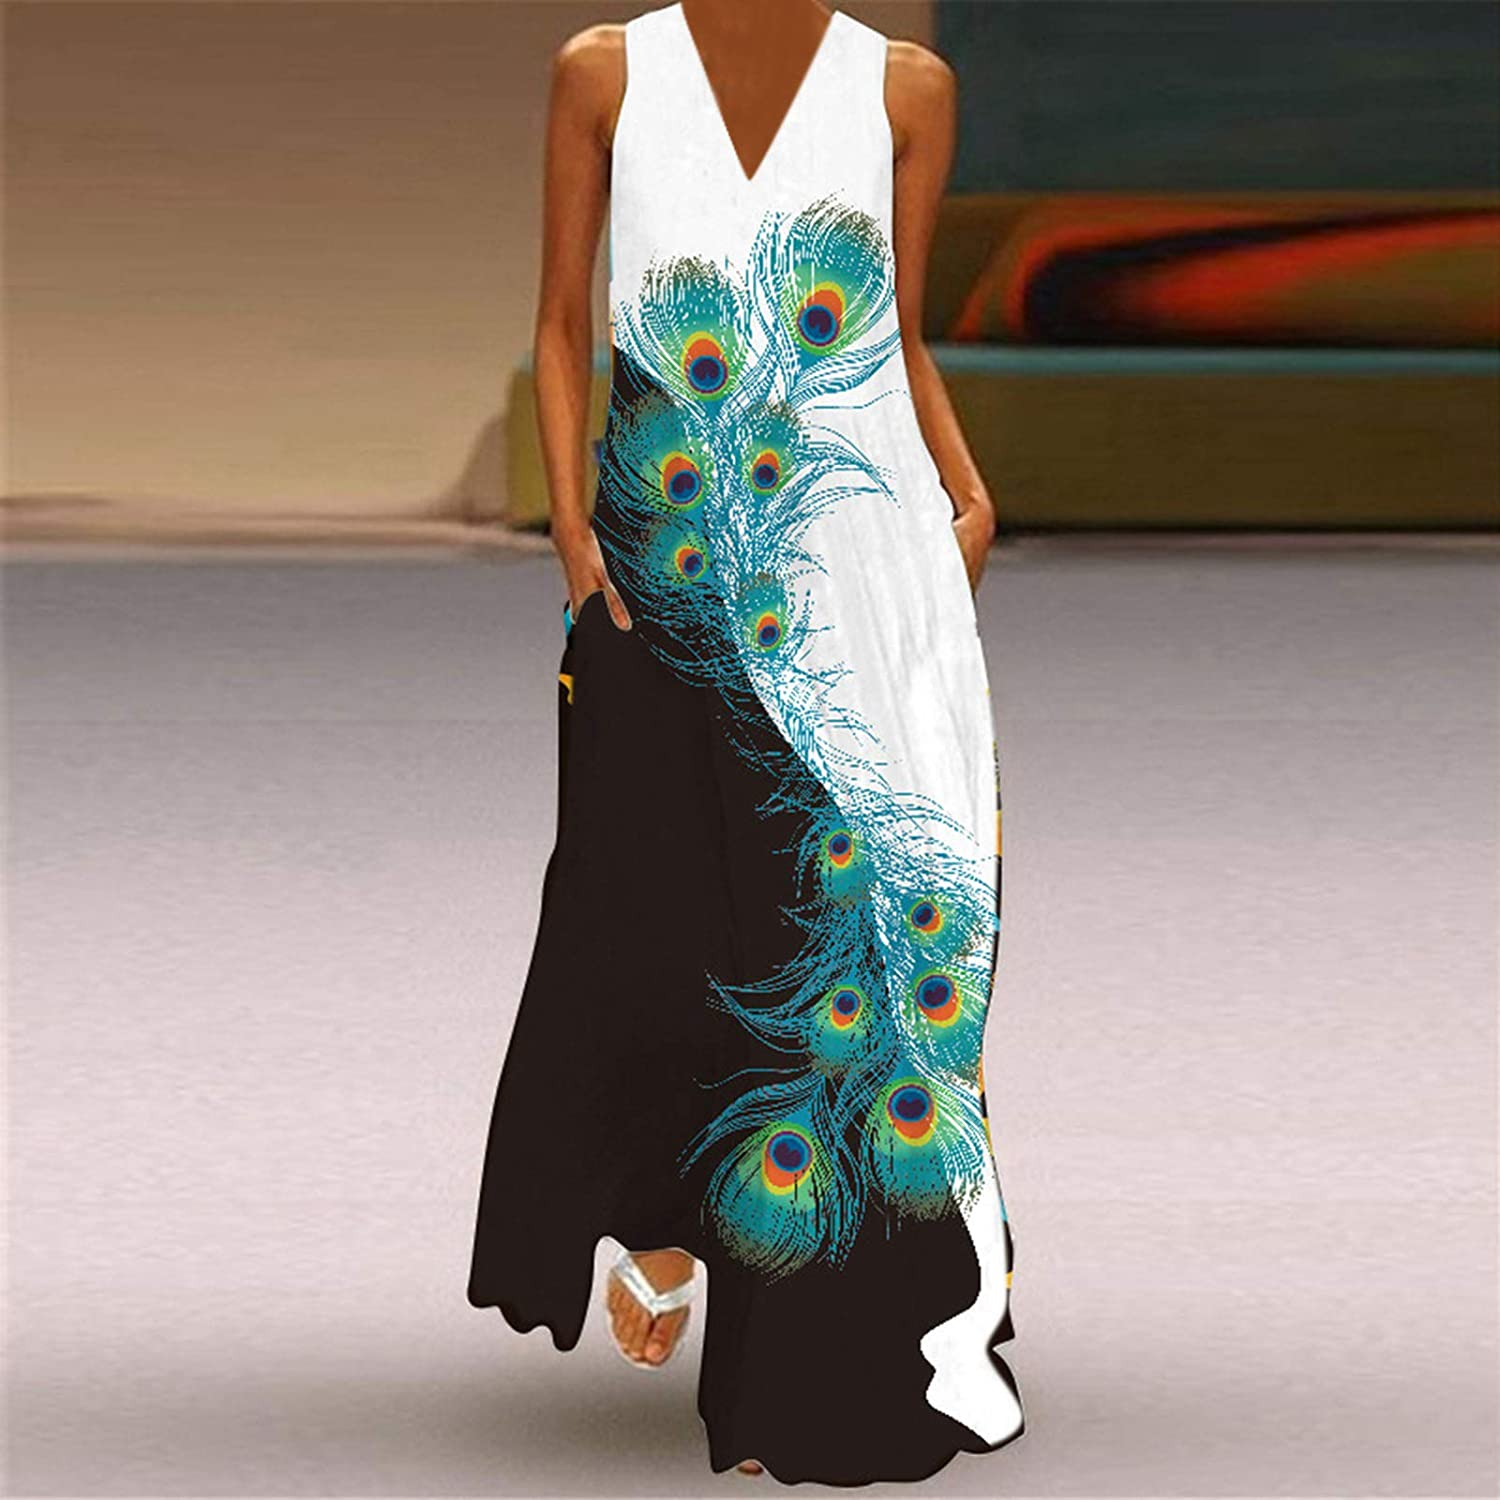 TAYBAGH Beach Dresses for Women Plus Size, Womens Floral Printed Casual Summer Dress Sleeveless Long Dresses with Pocket